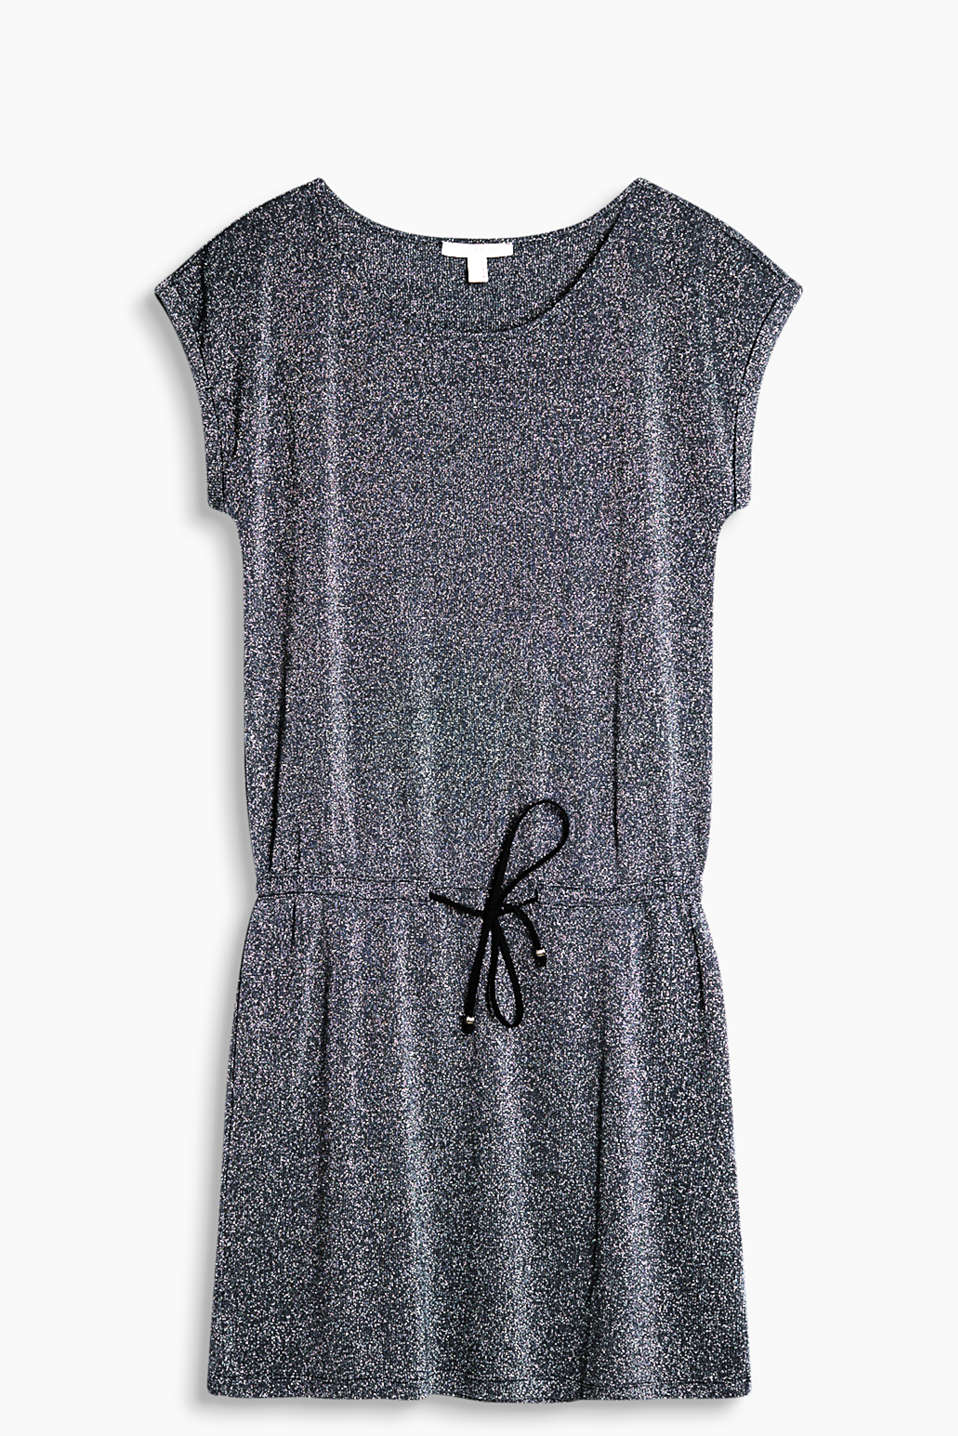 Soft lurex jersey dress with a fashionable T-shaped design and tie-around belt in faux suede